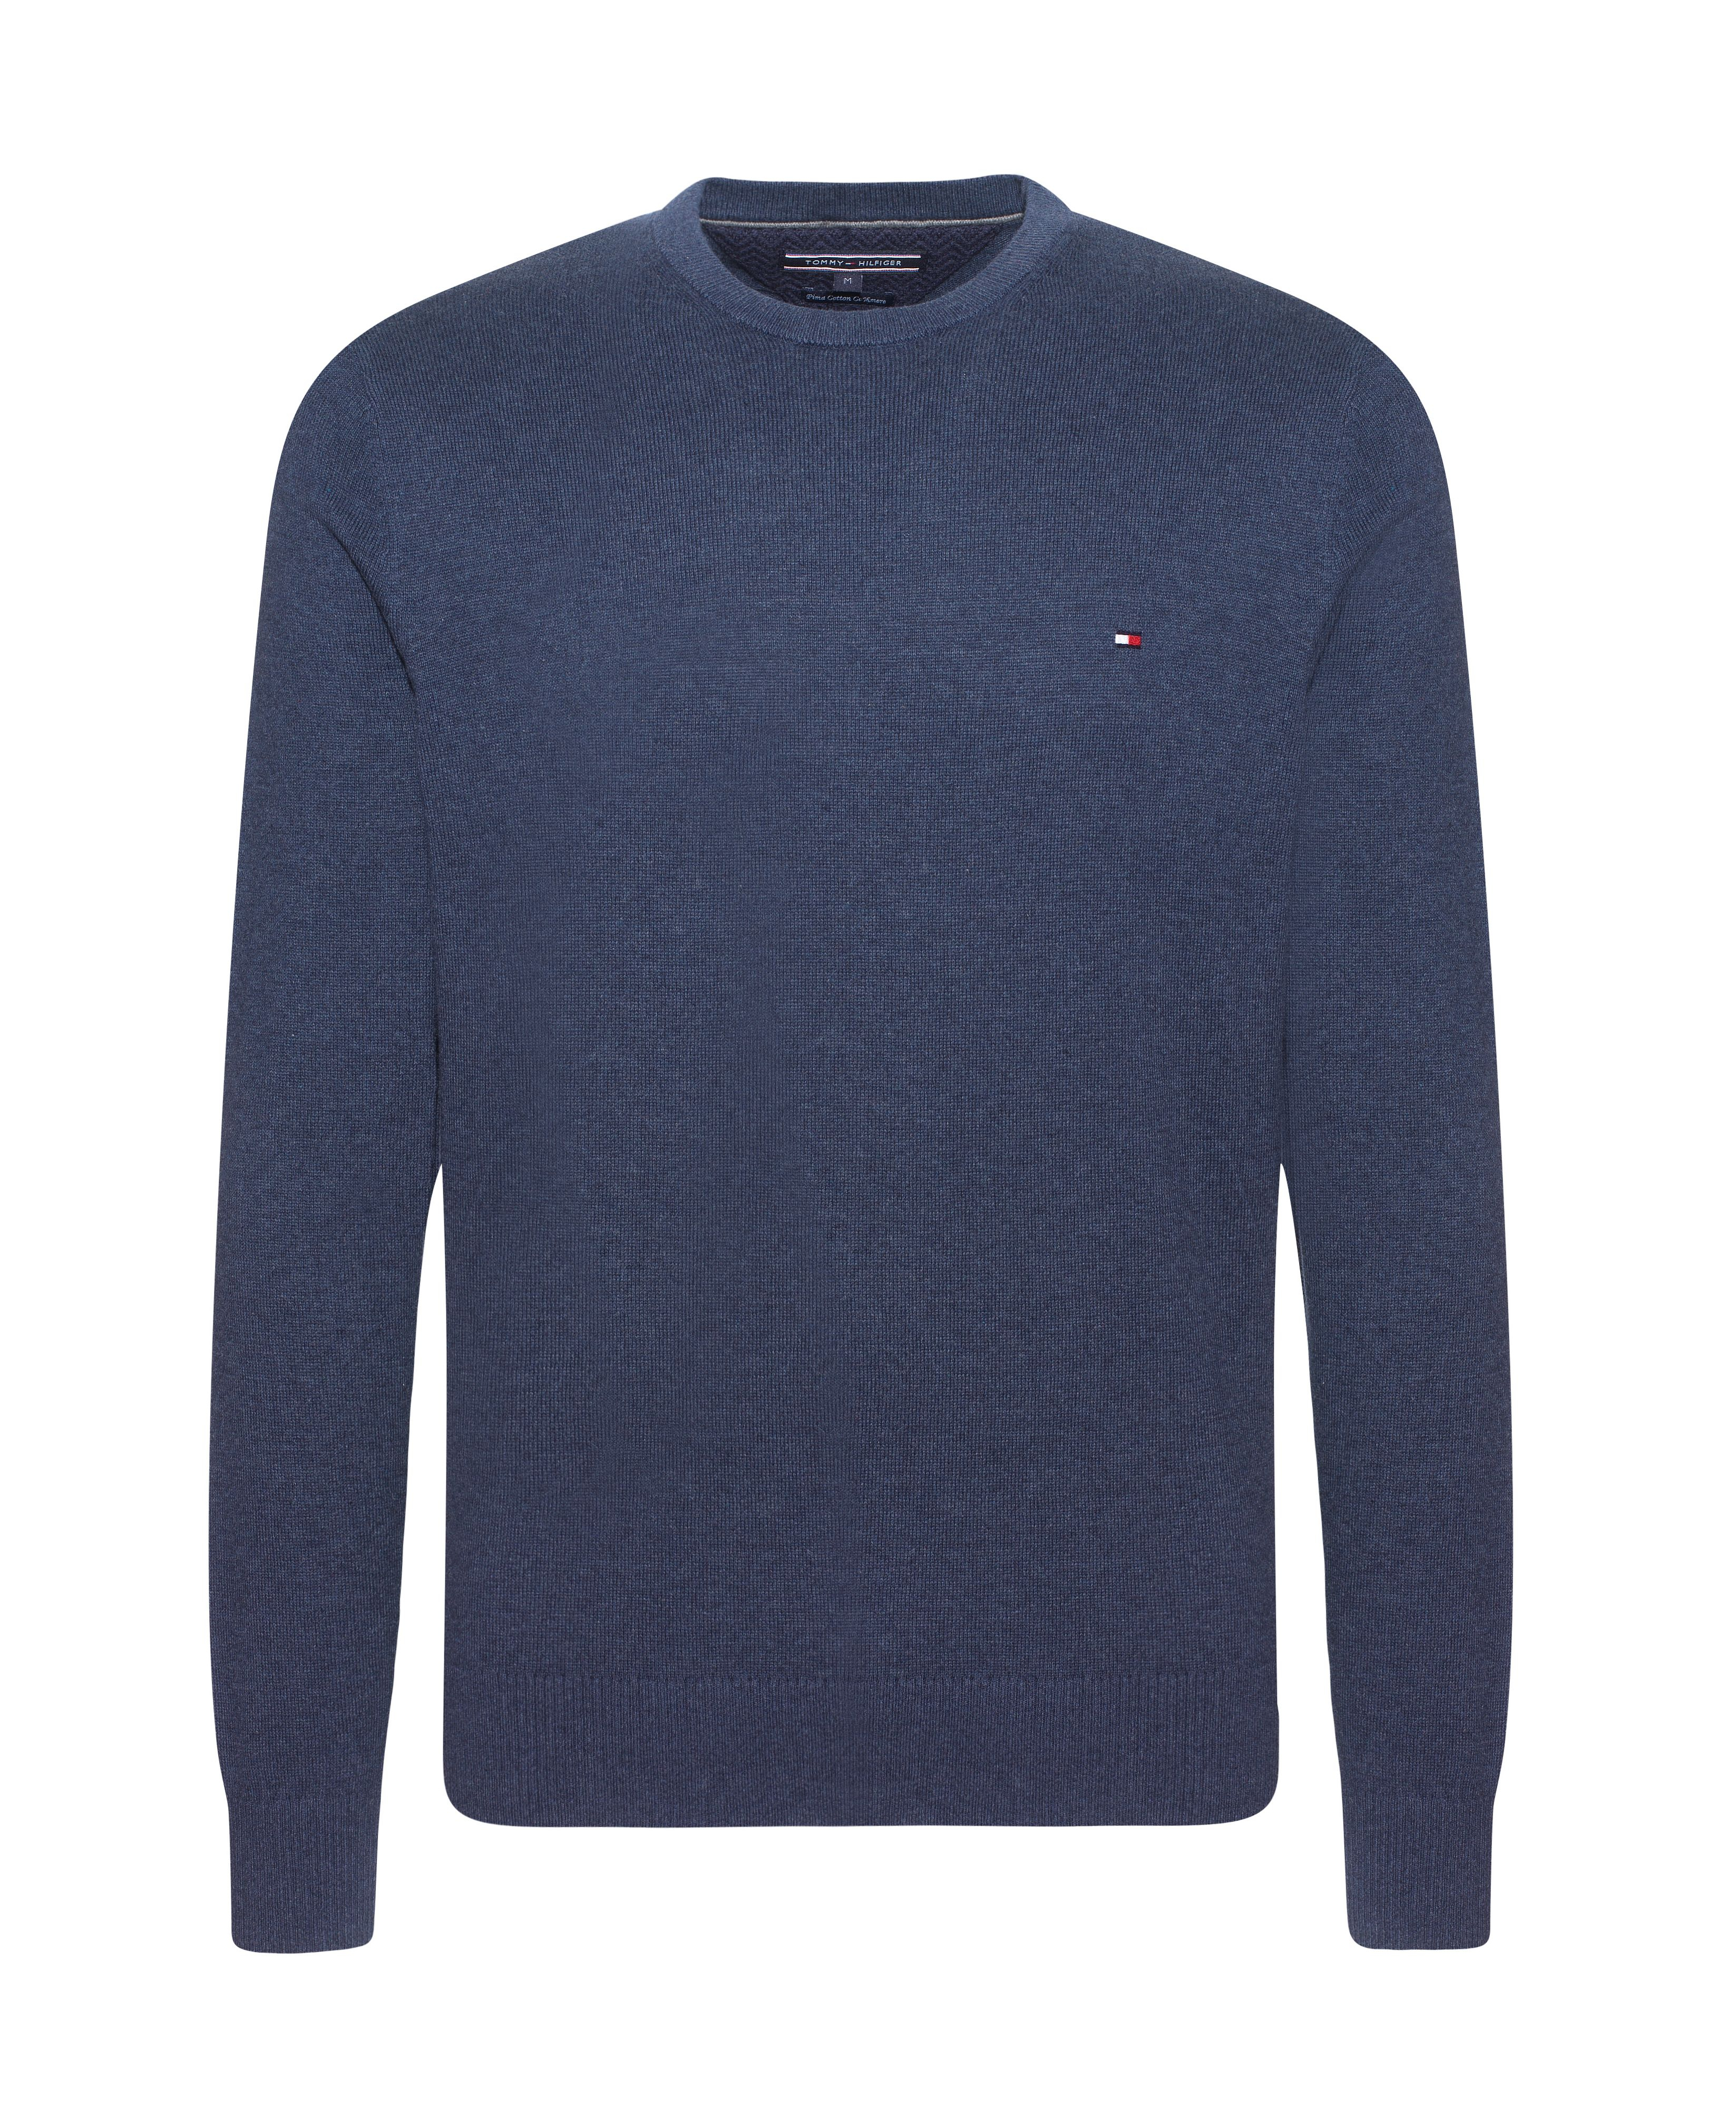 Tommy hilfiger Pima Cotton Cashmere Crew-neck Sweater in Blue for ...